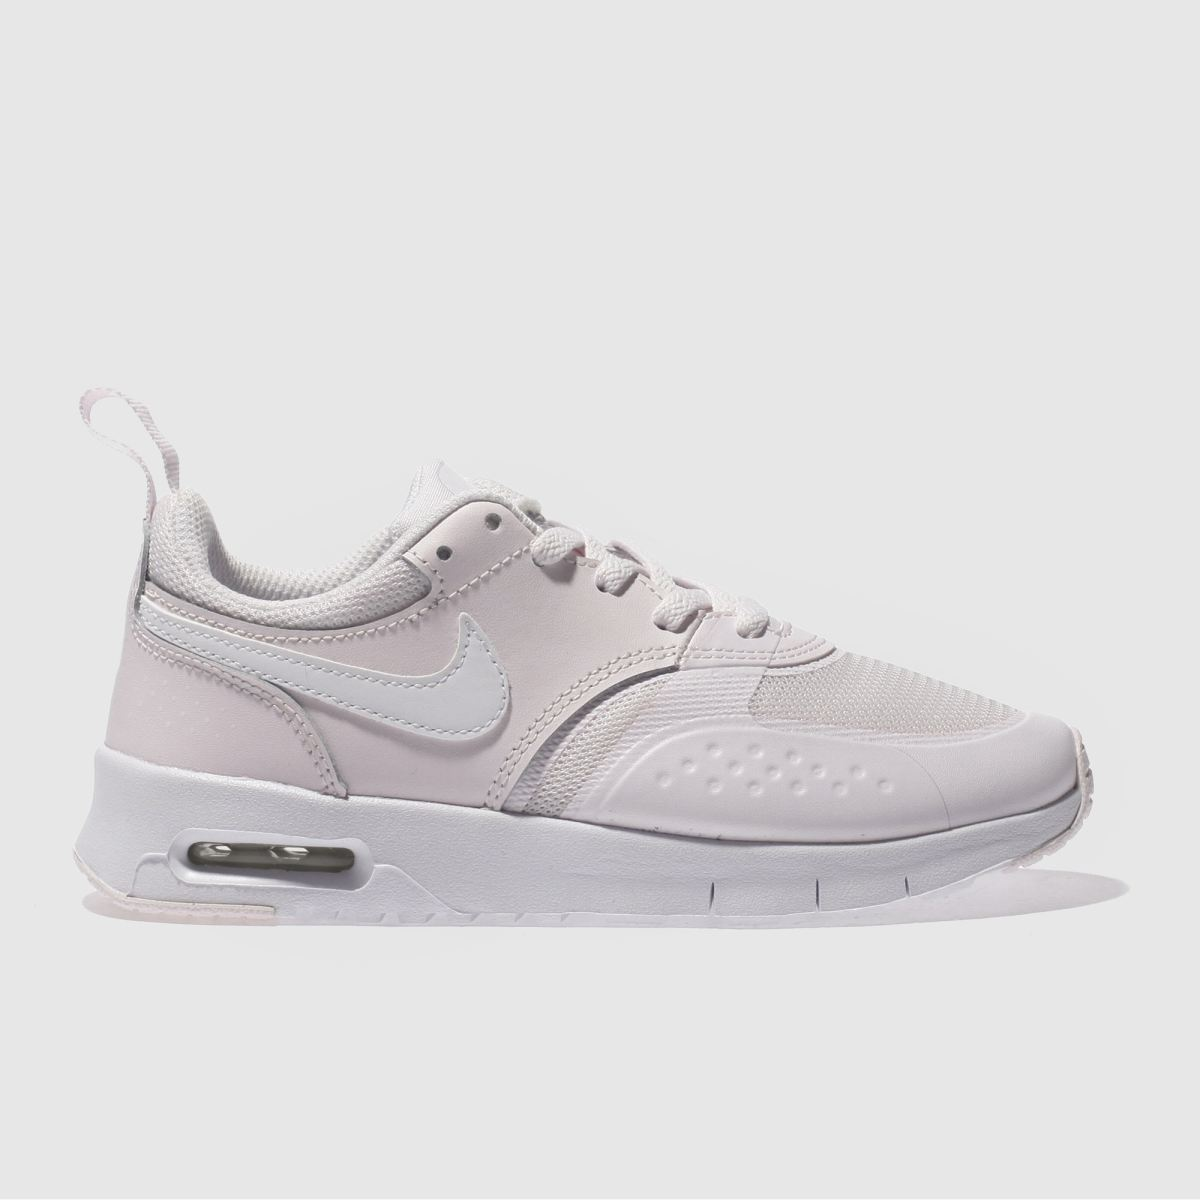 nike pale pink air max vision Girls Junior Trainers